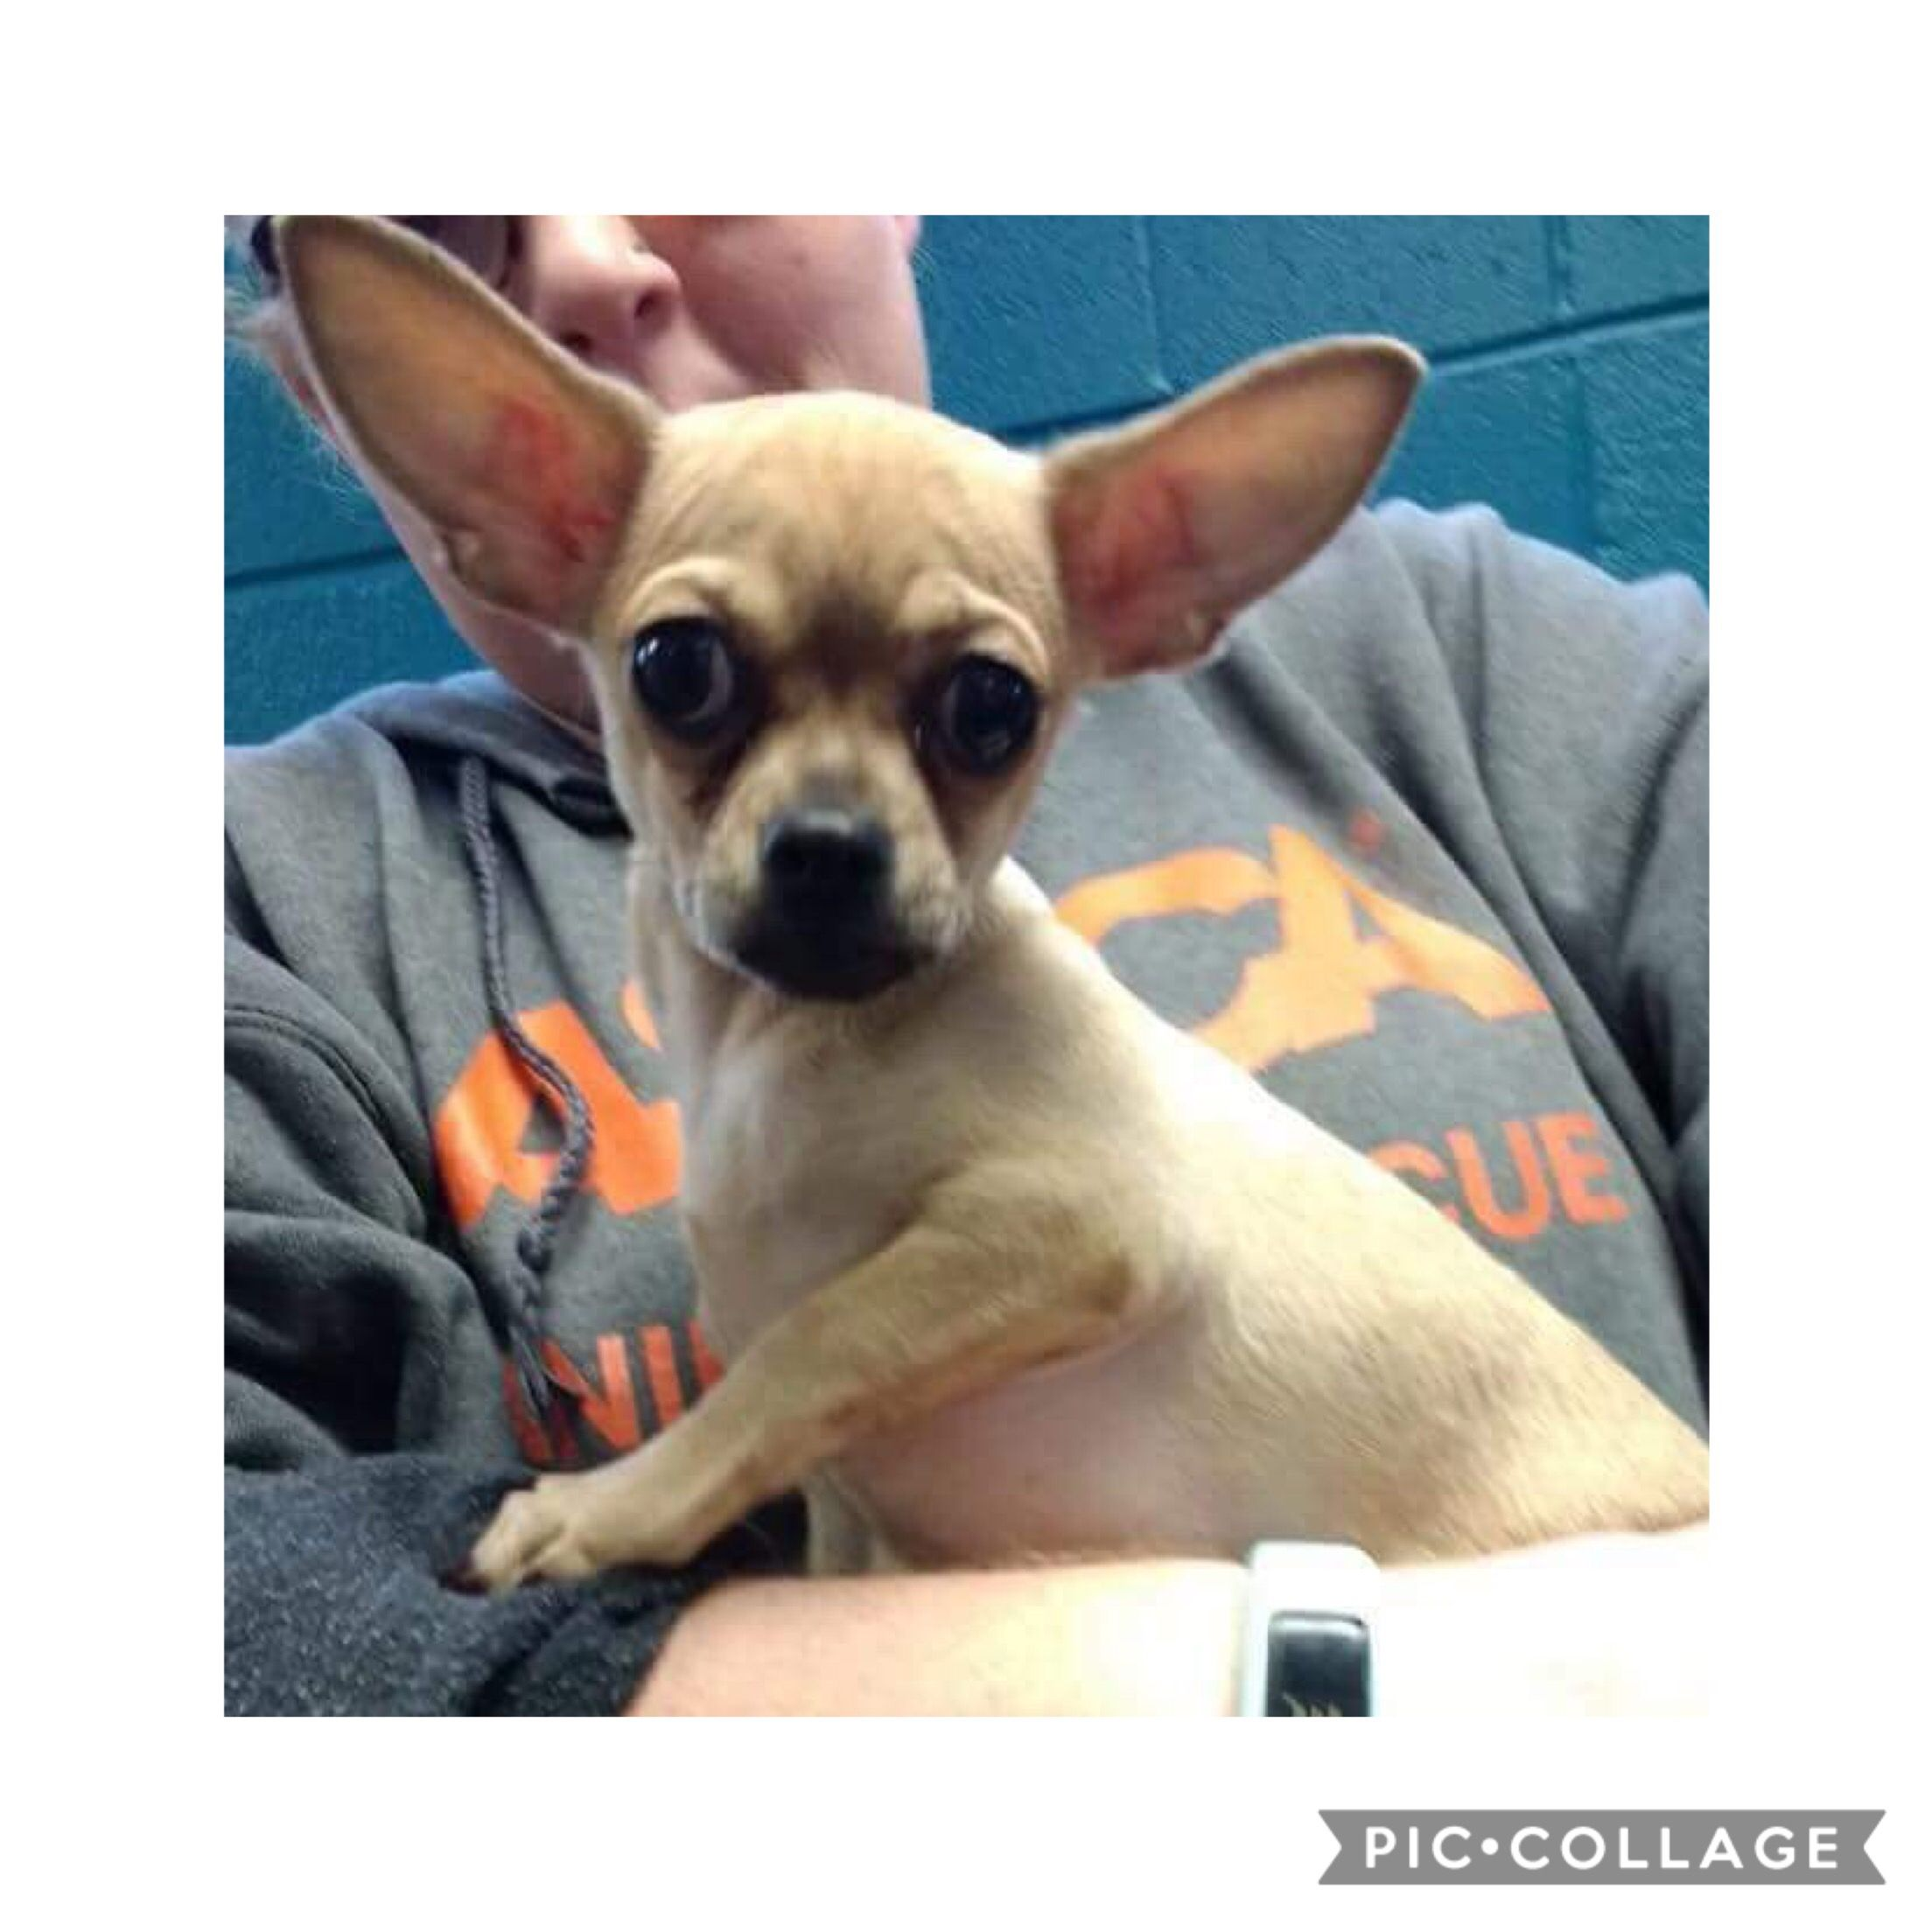 Chihuahua dog for Adoption in Holly Springs, NC. ADN